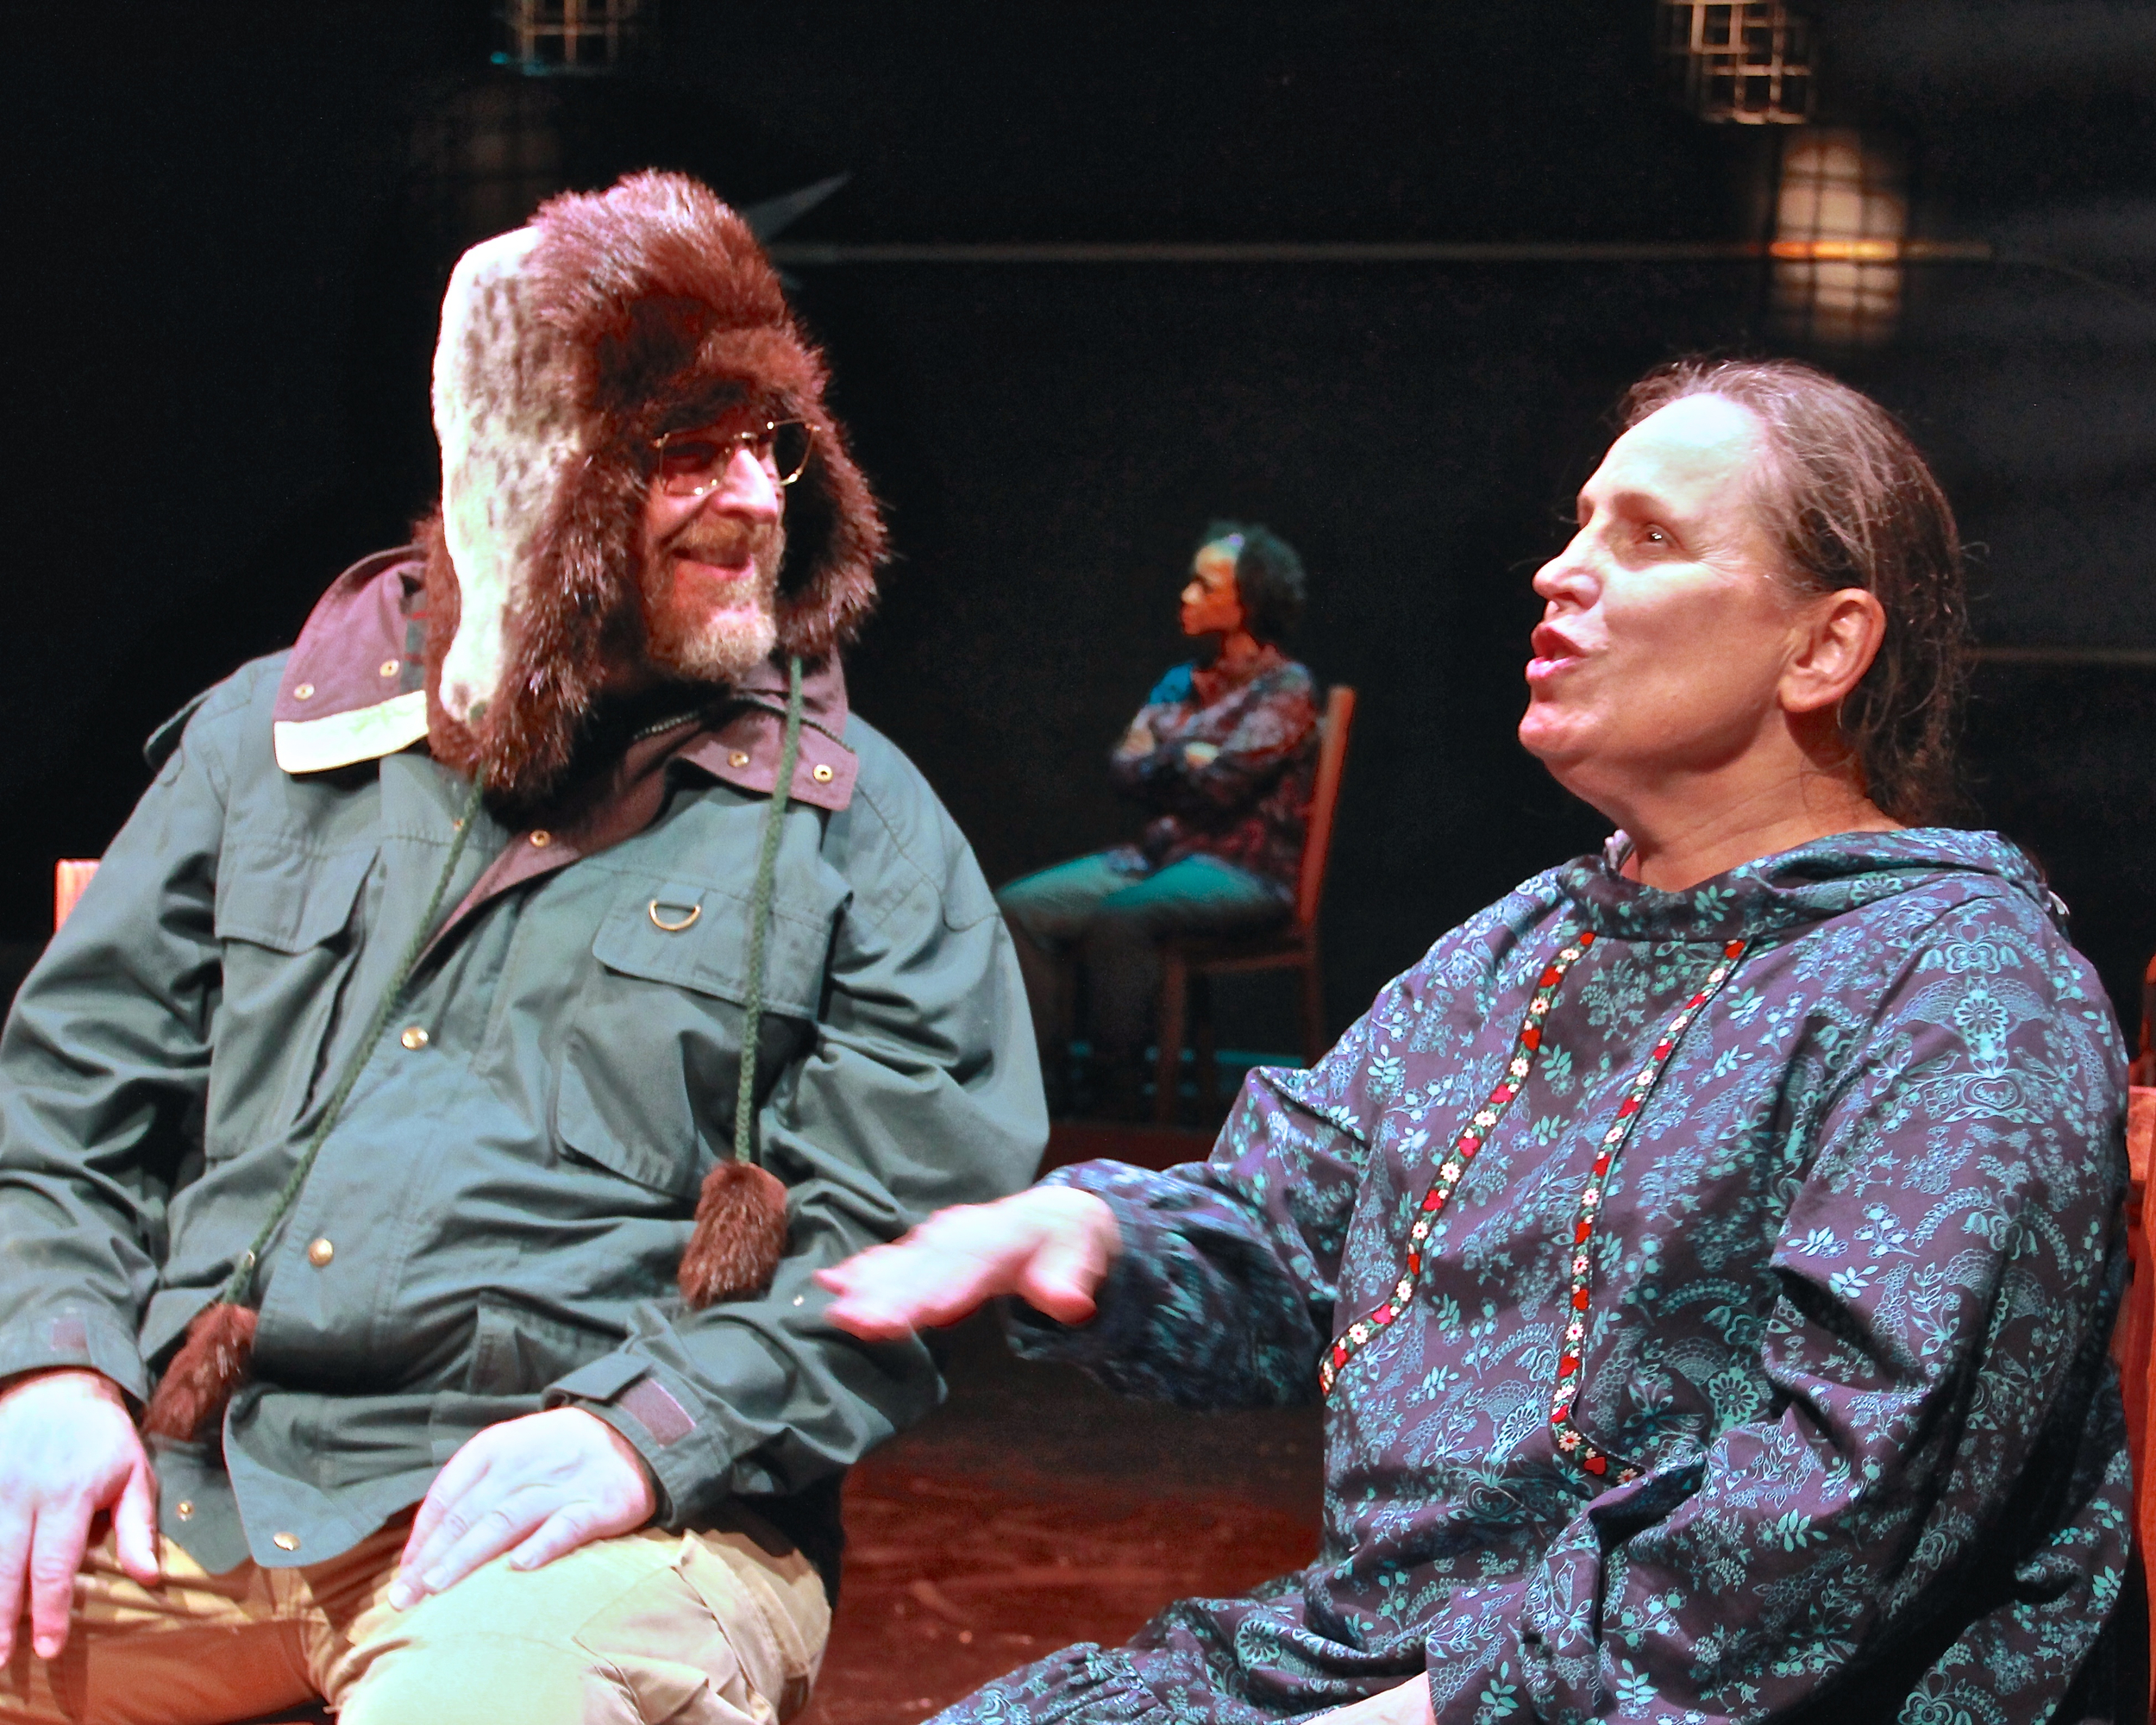 Luke Cole (Damon K Sperber*) and Lucy (Lynne Soffer*), Colleen (Cathleen Riddley*) in background photo credit: Vicki Victoria *Member Actors Equity Association